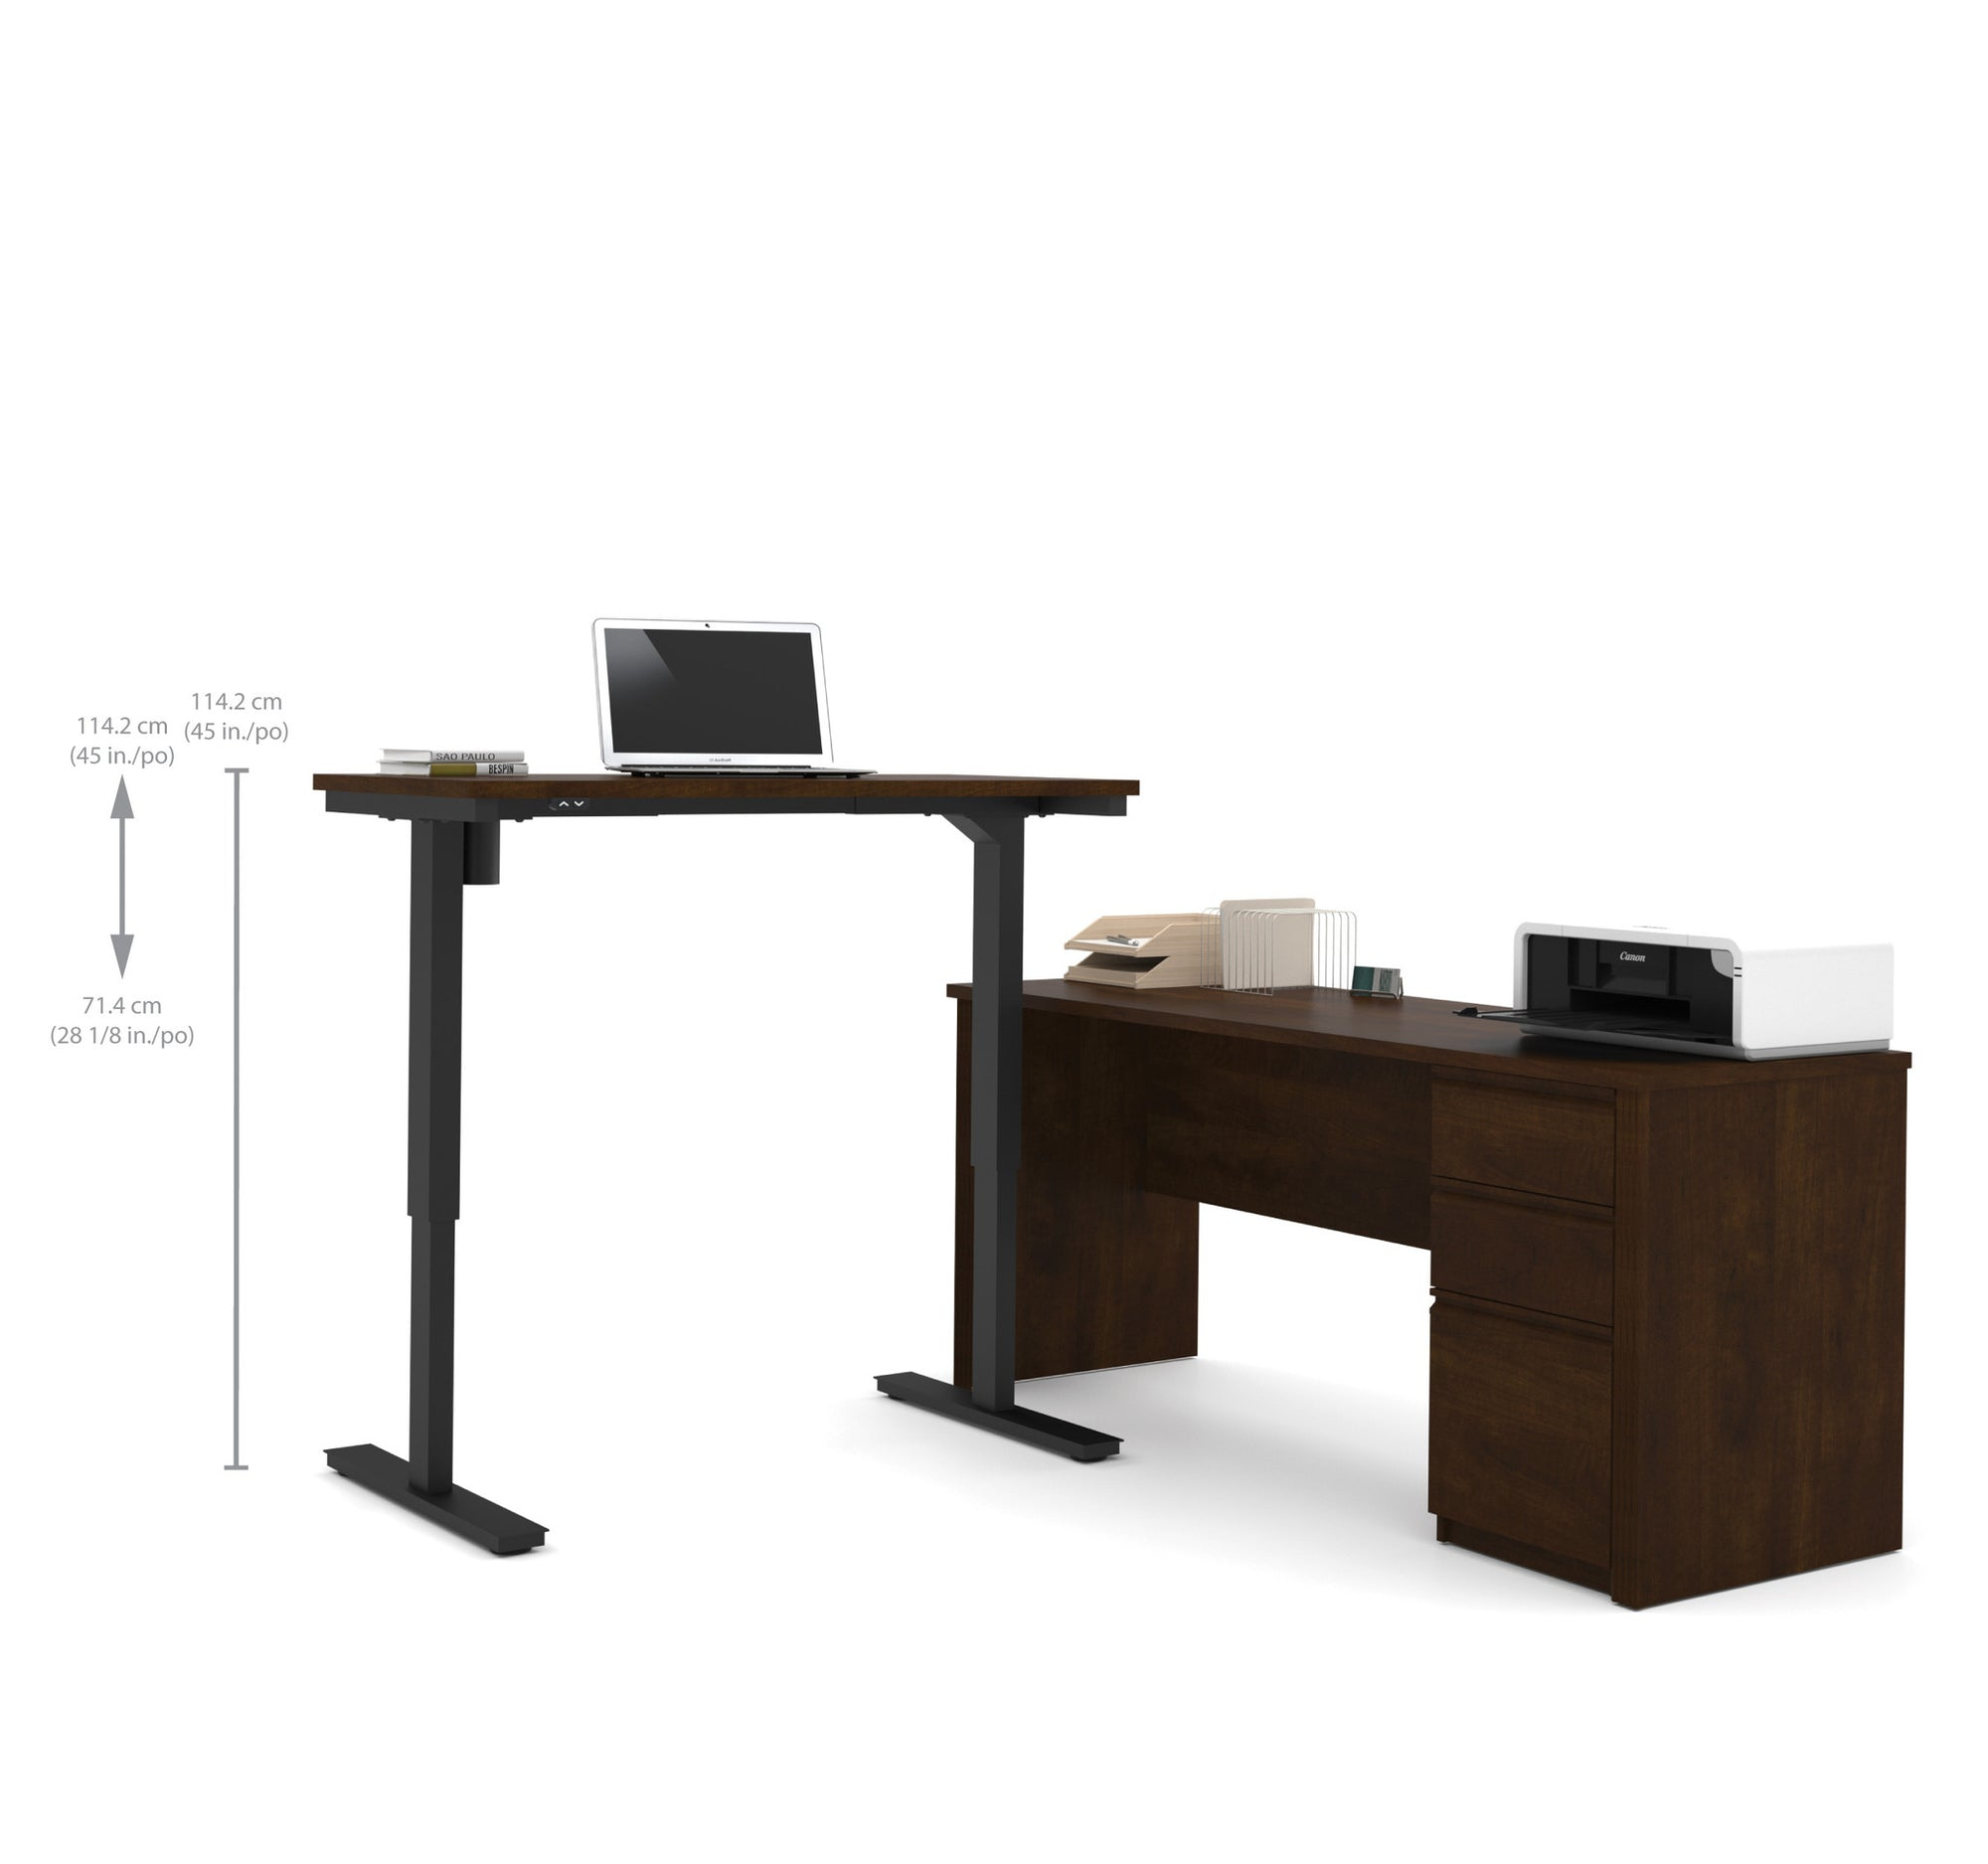 is itm oak pc loading pedestal solid desk furniture single arden workstation image gal office computer